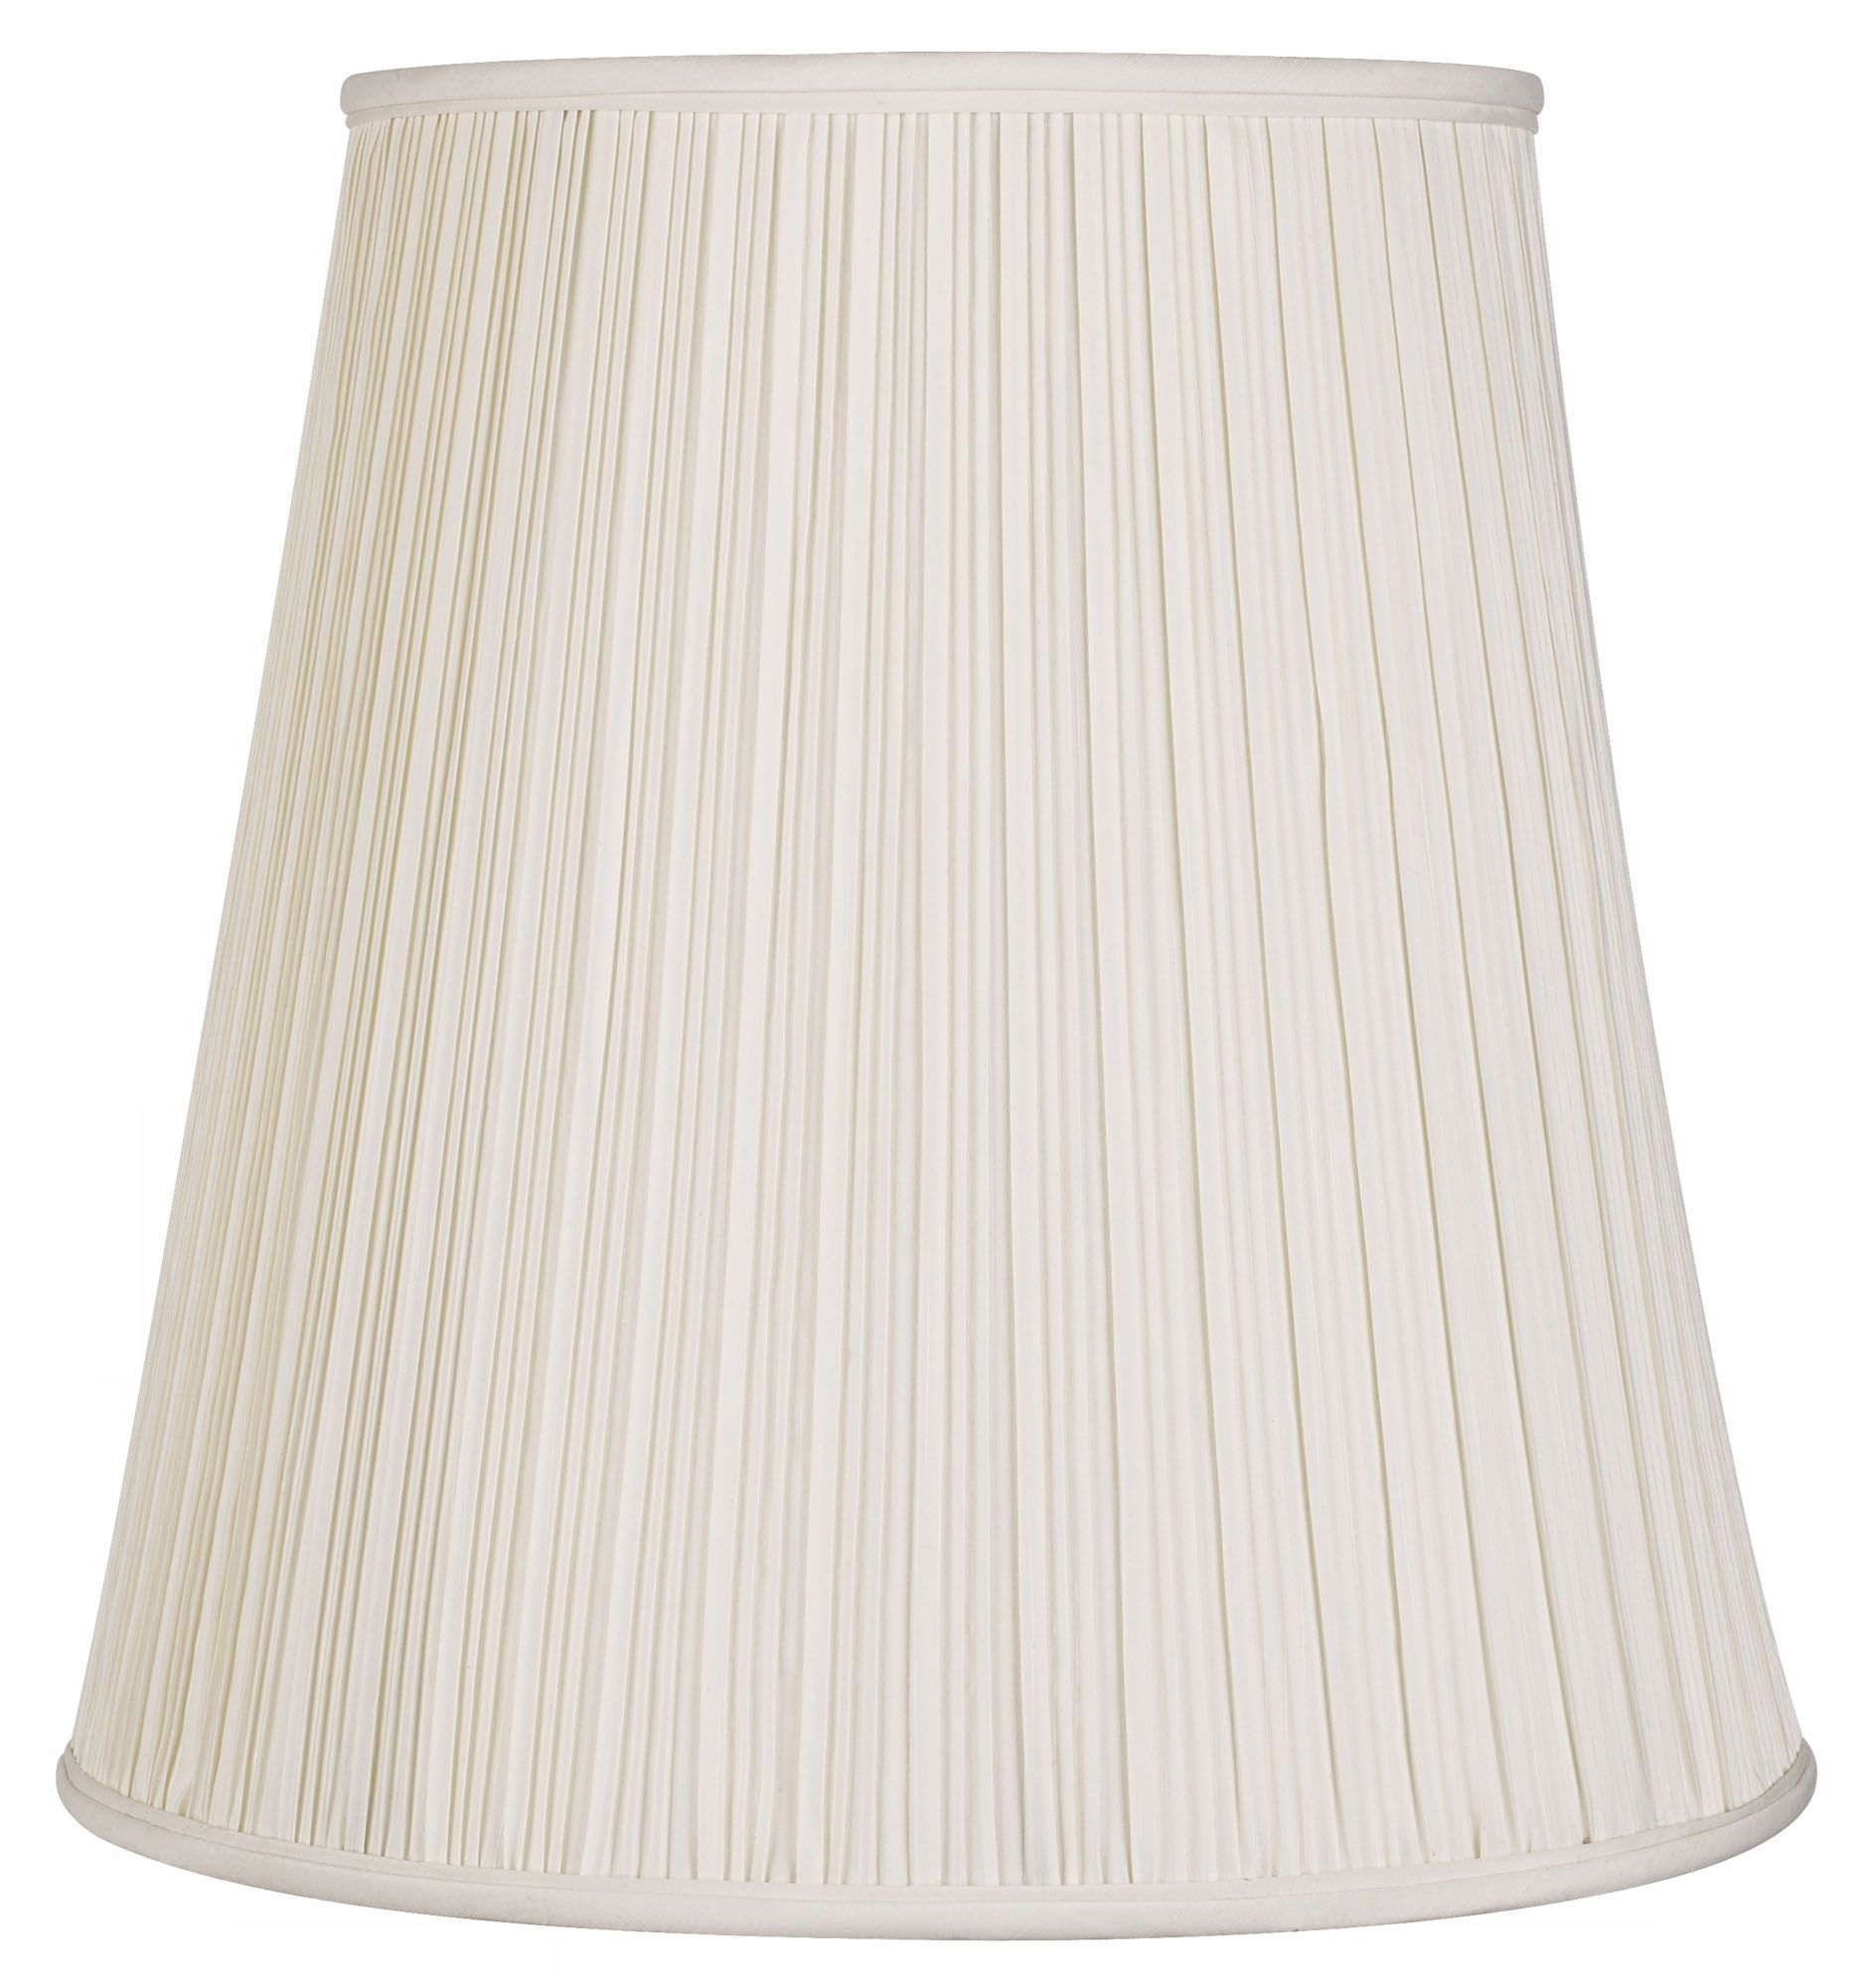 lamp shades creme mushroom pleat lamp shade 12x18x18 (spider) VAIWAMF